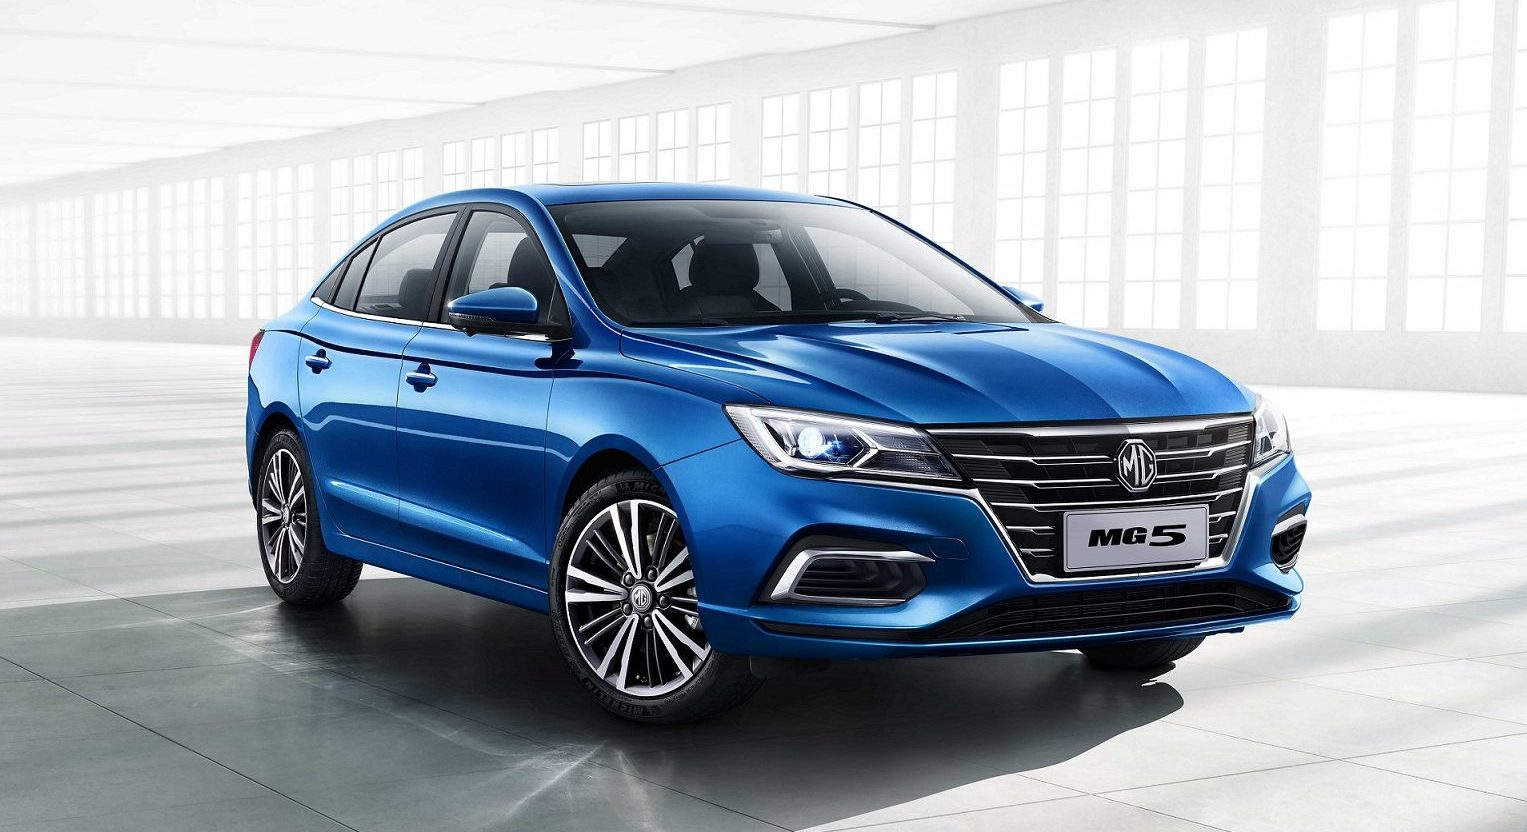 MG's spacious new compact sedan, MG5 will arrive in the Middle East this August